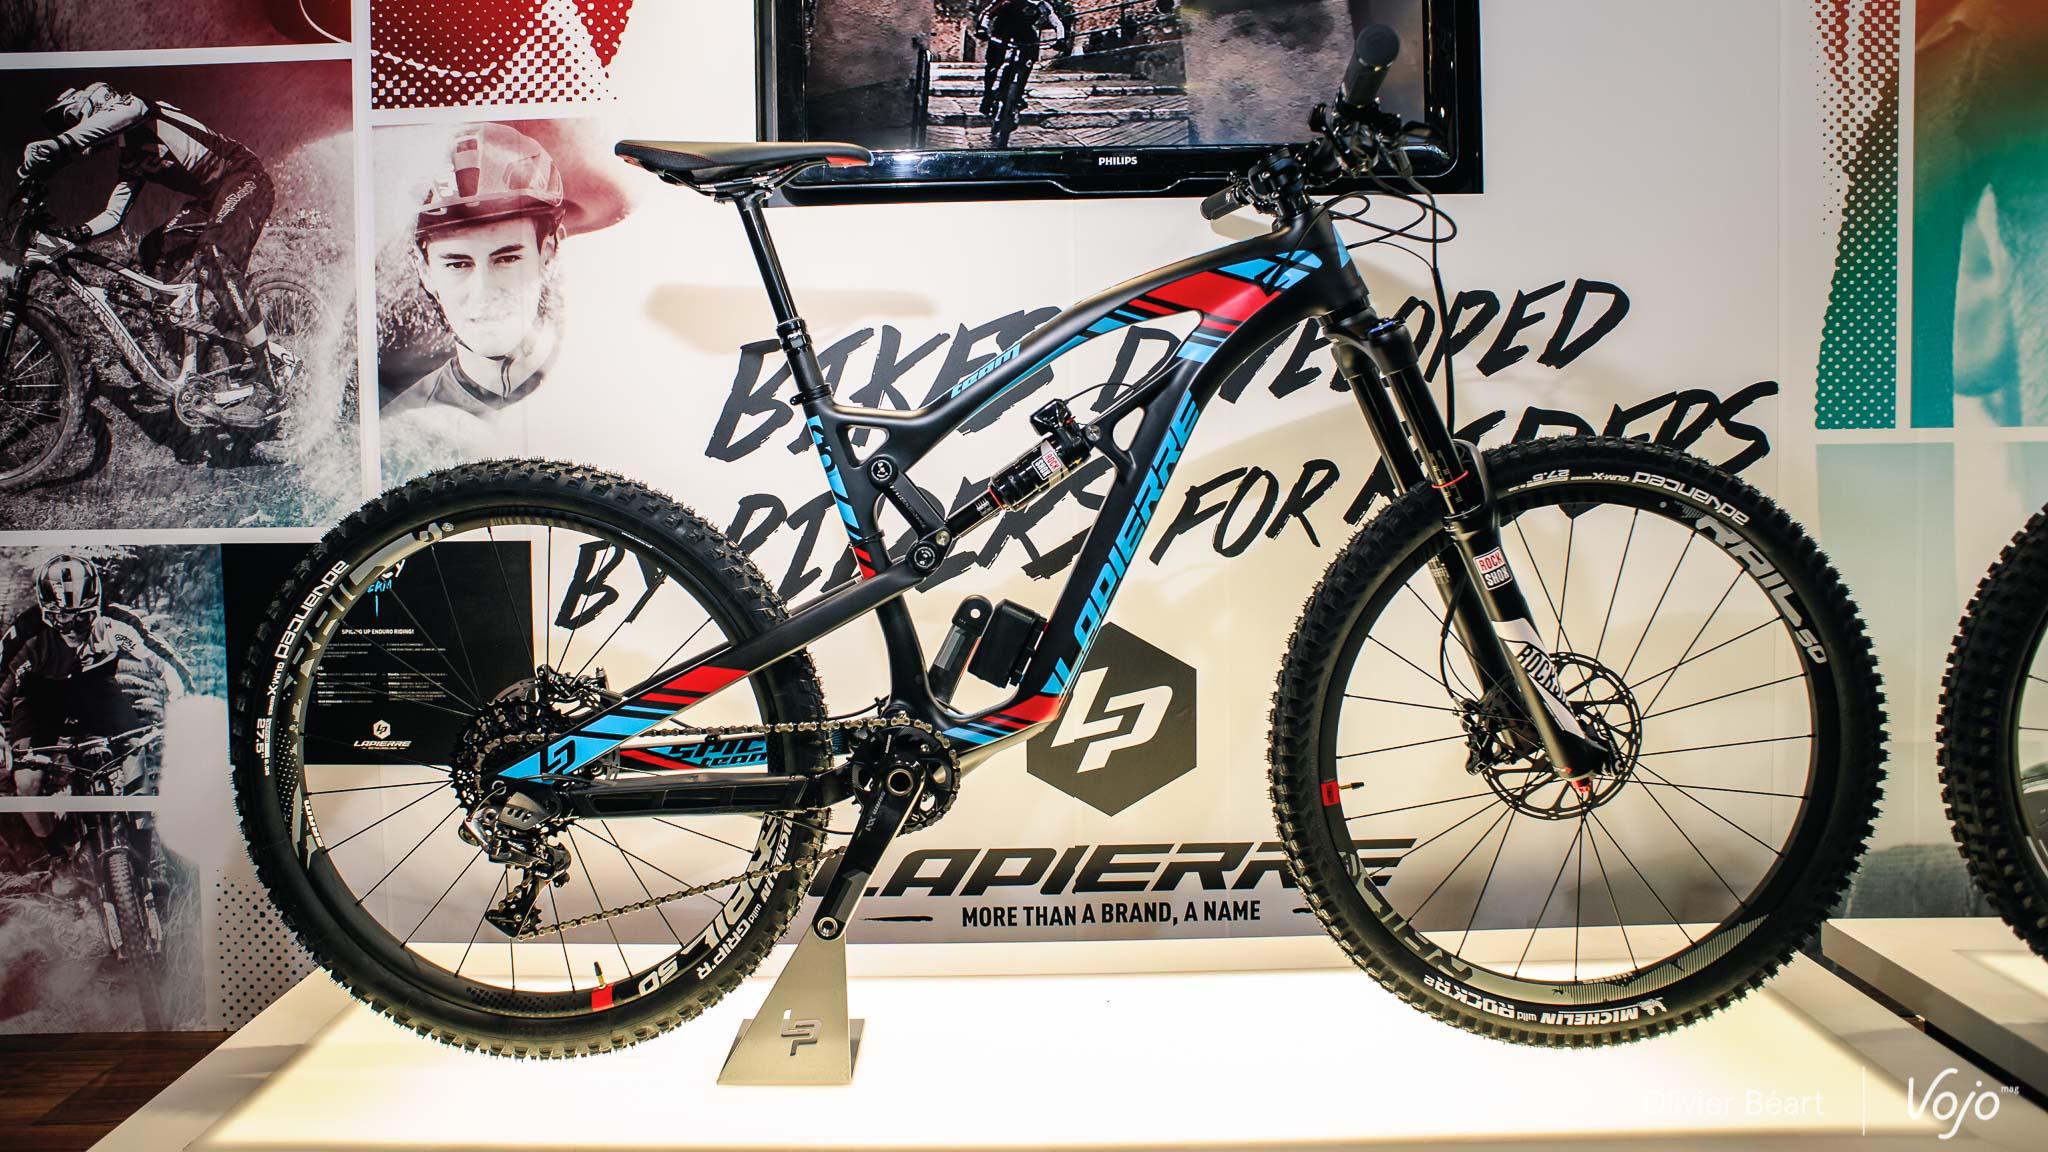 Eurobike_2016_Lapierre_Spicy_Copyright_OBeart_VojoMag-1